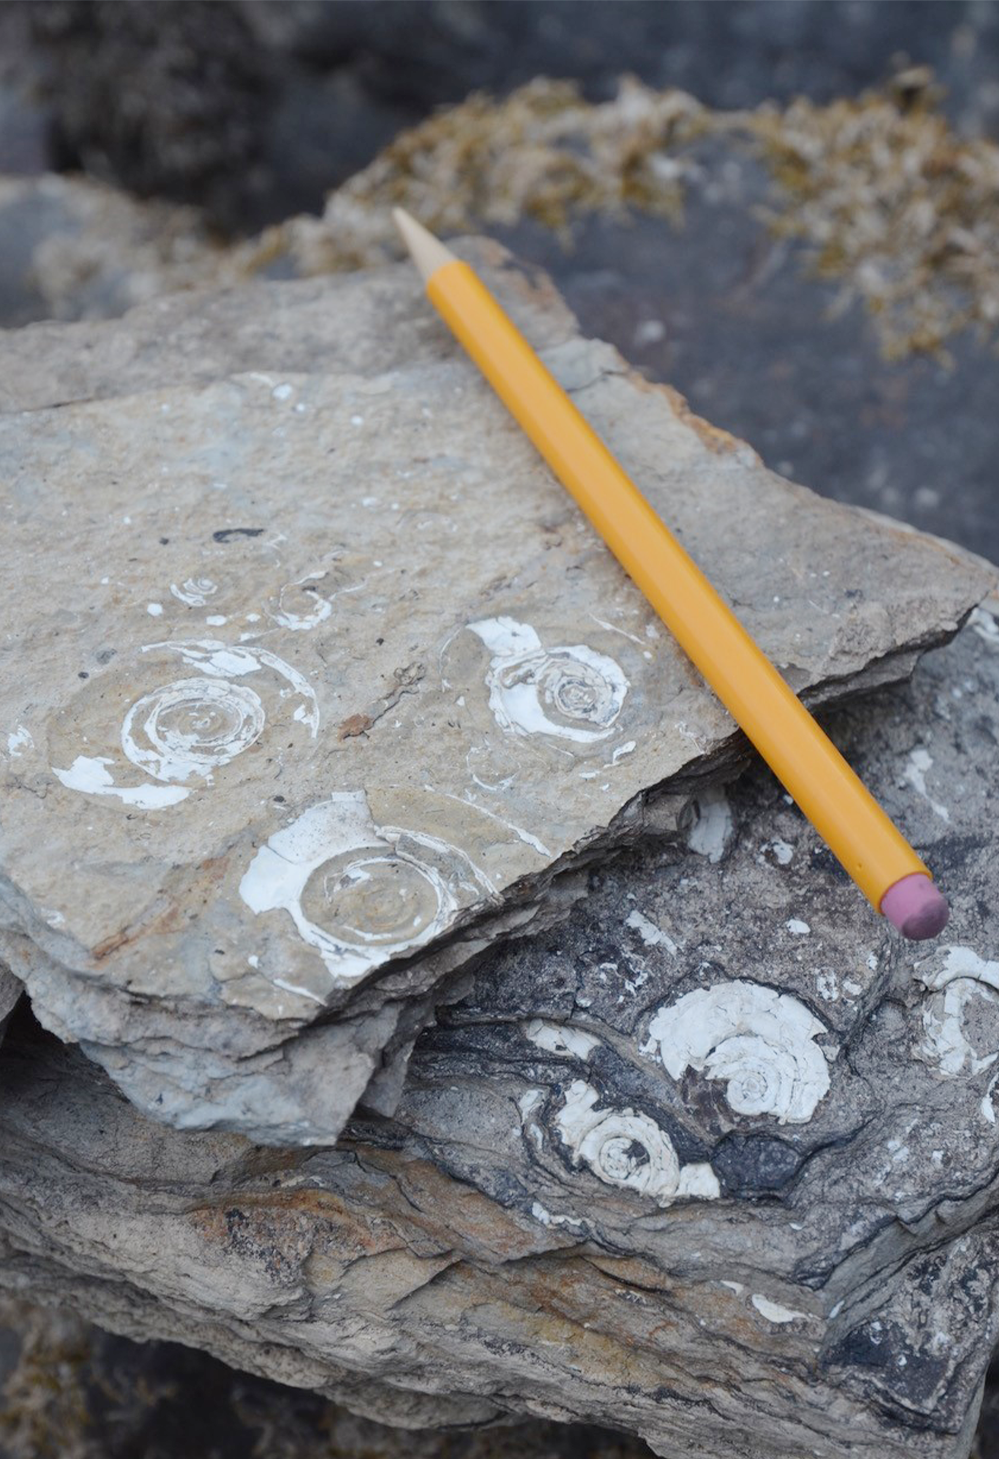 A pencil sits next to snail fossils imbedded in a rock